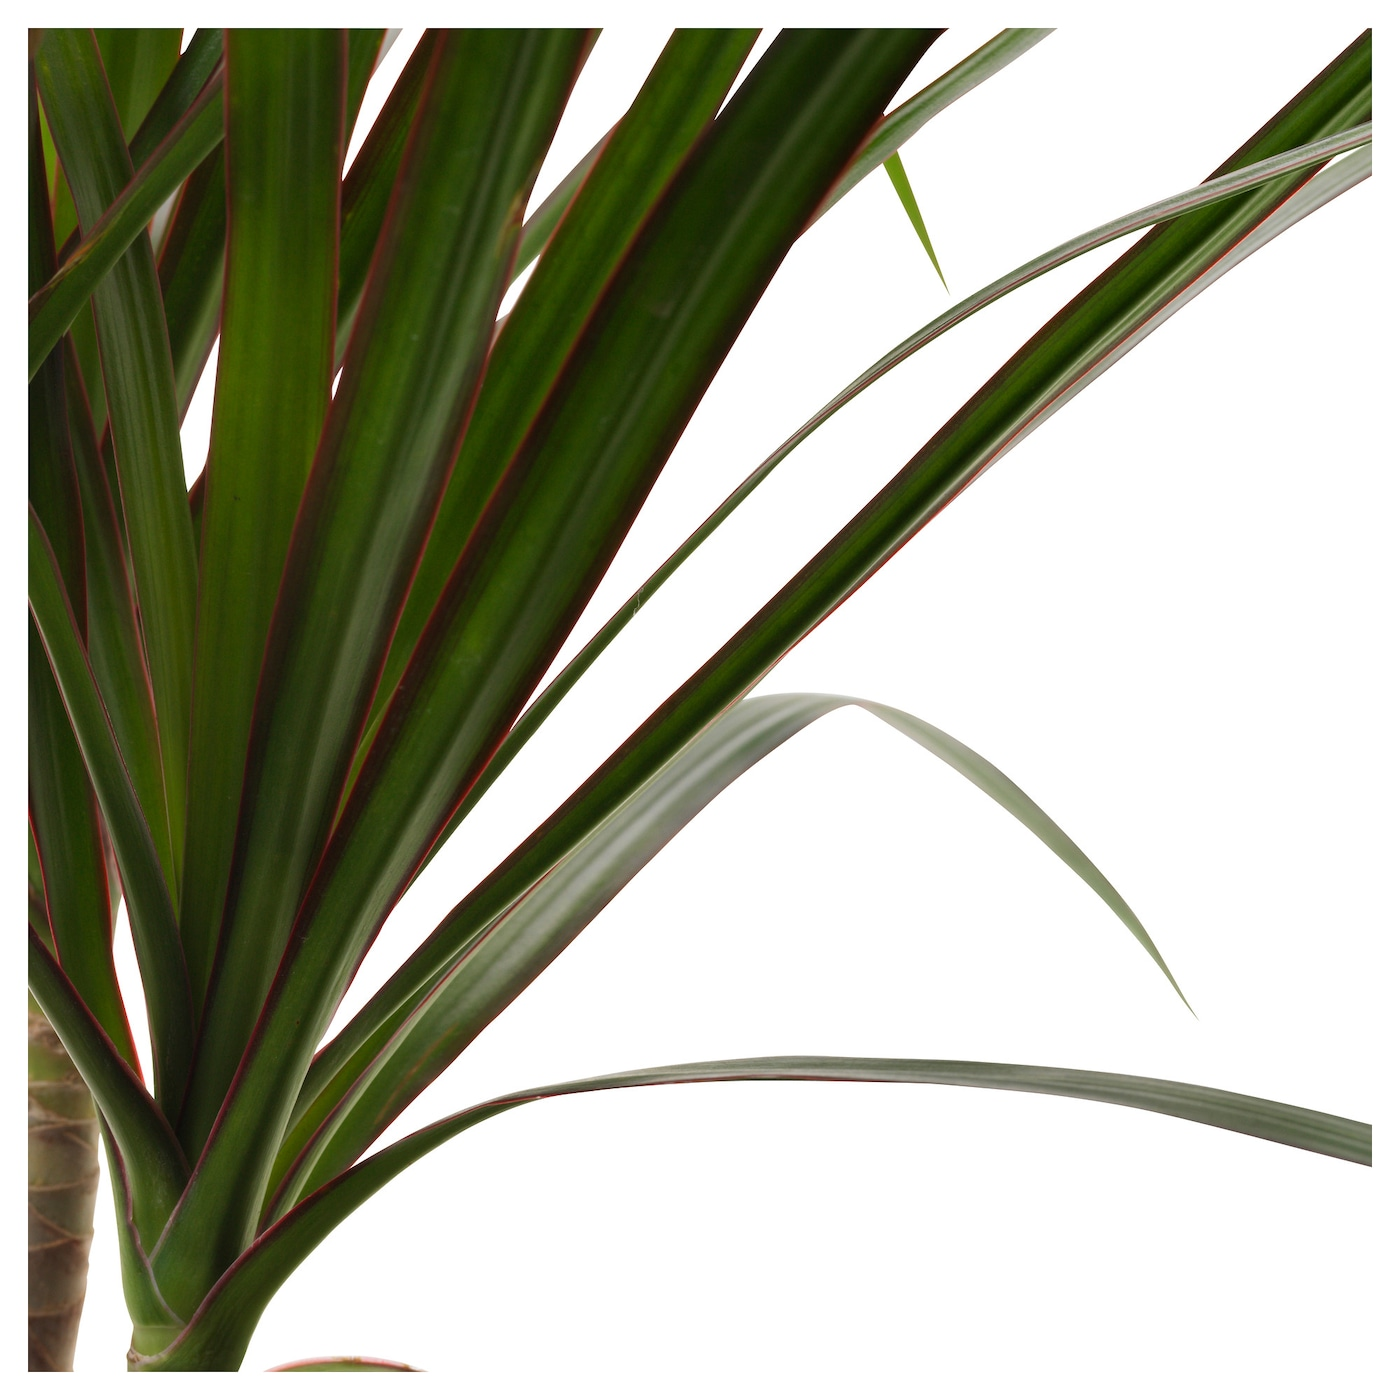 Dracaena marginata potted plant dragon tree 1 stem 10 5 cm for Dracaena marginata